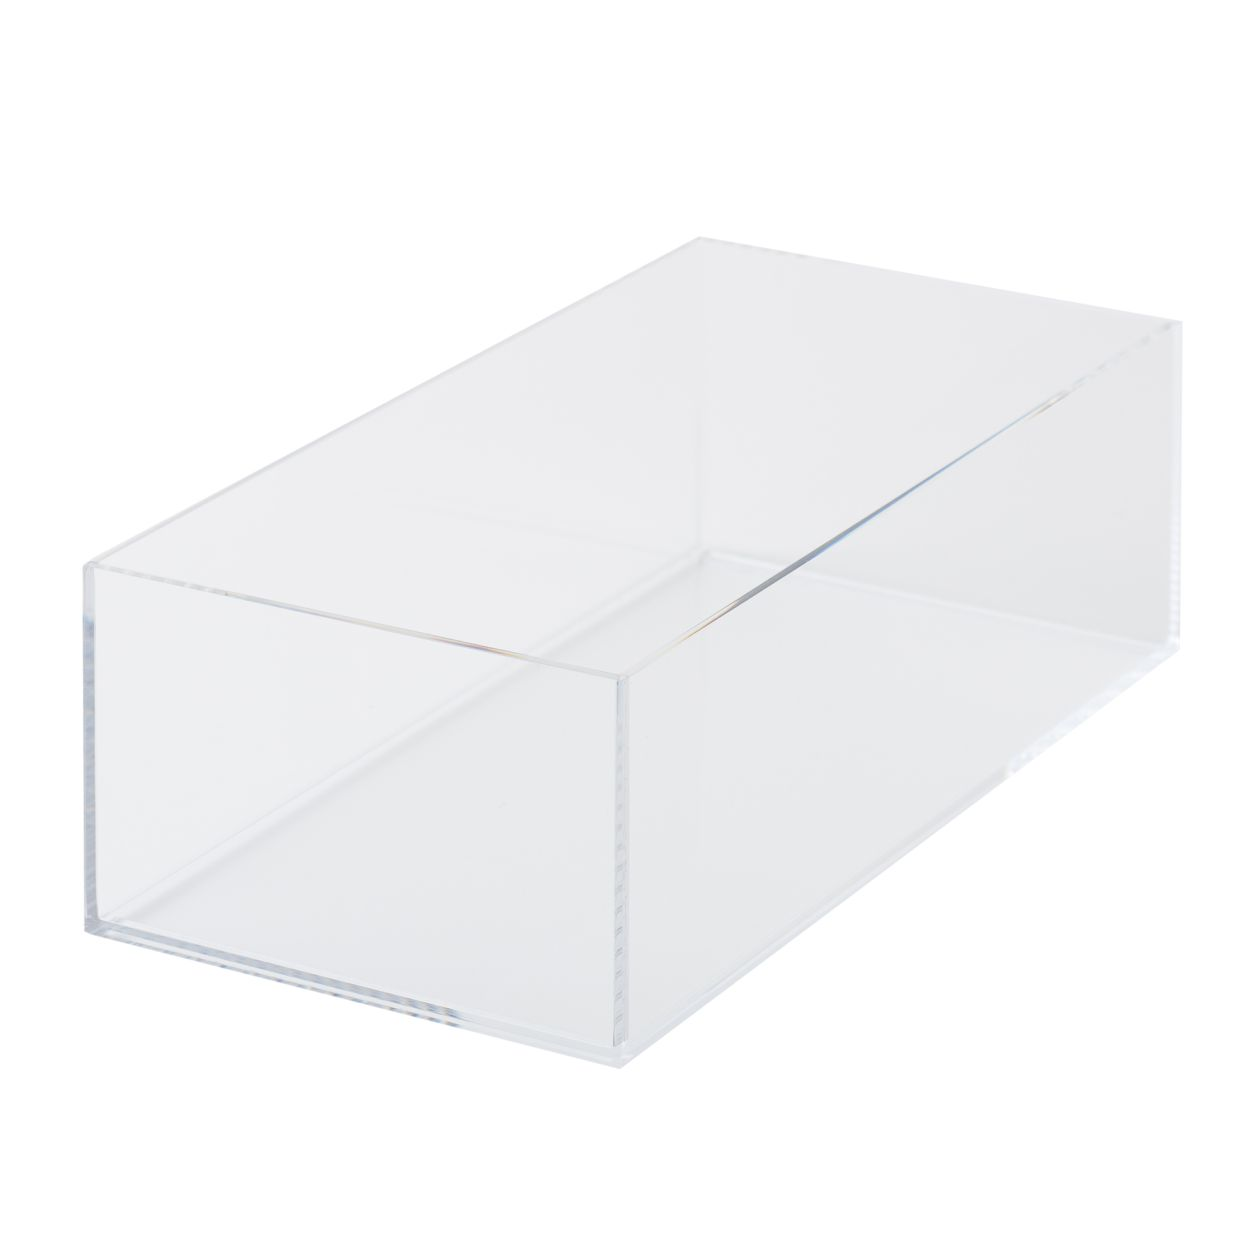 STACKABLE ACRYLIC BOX / M